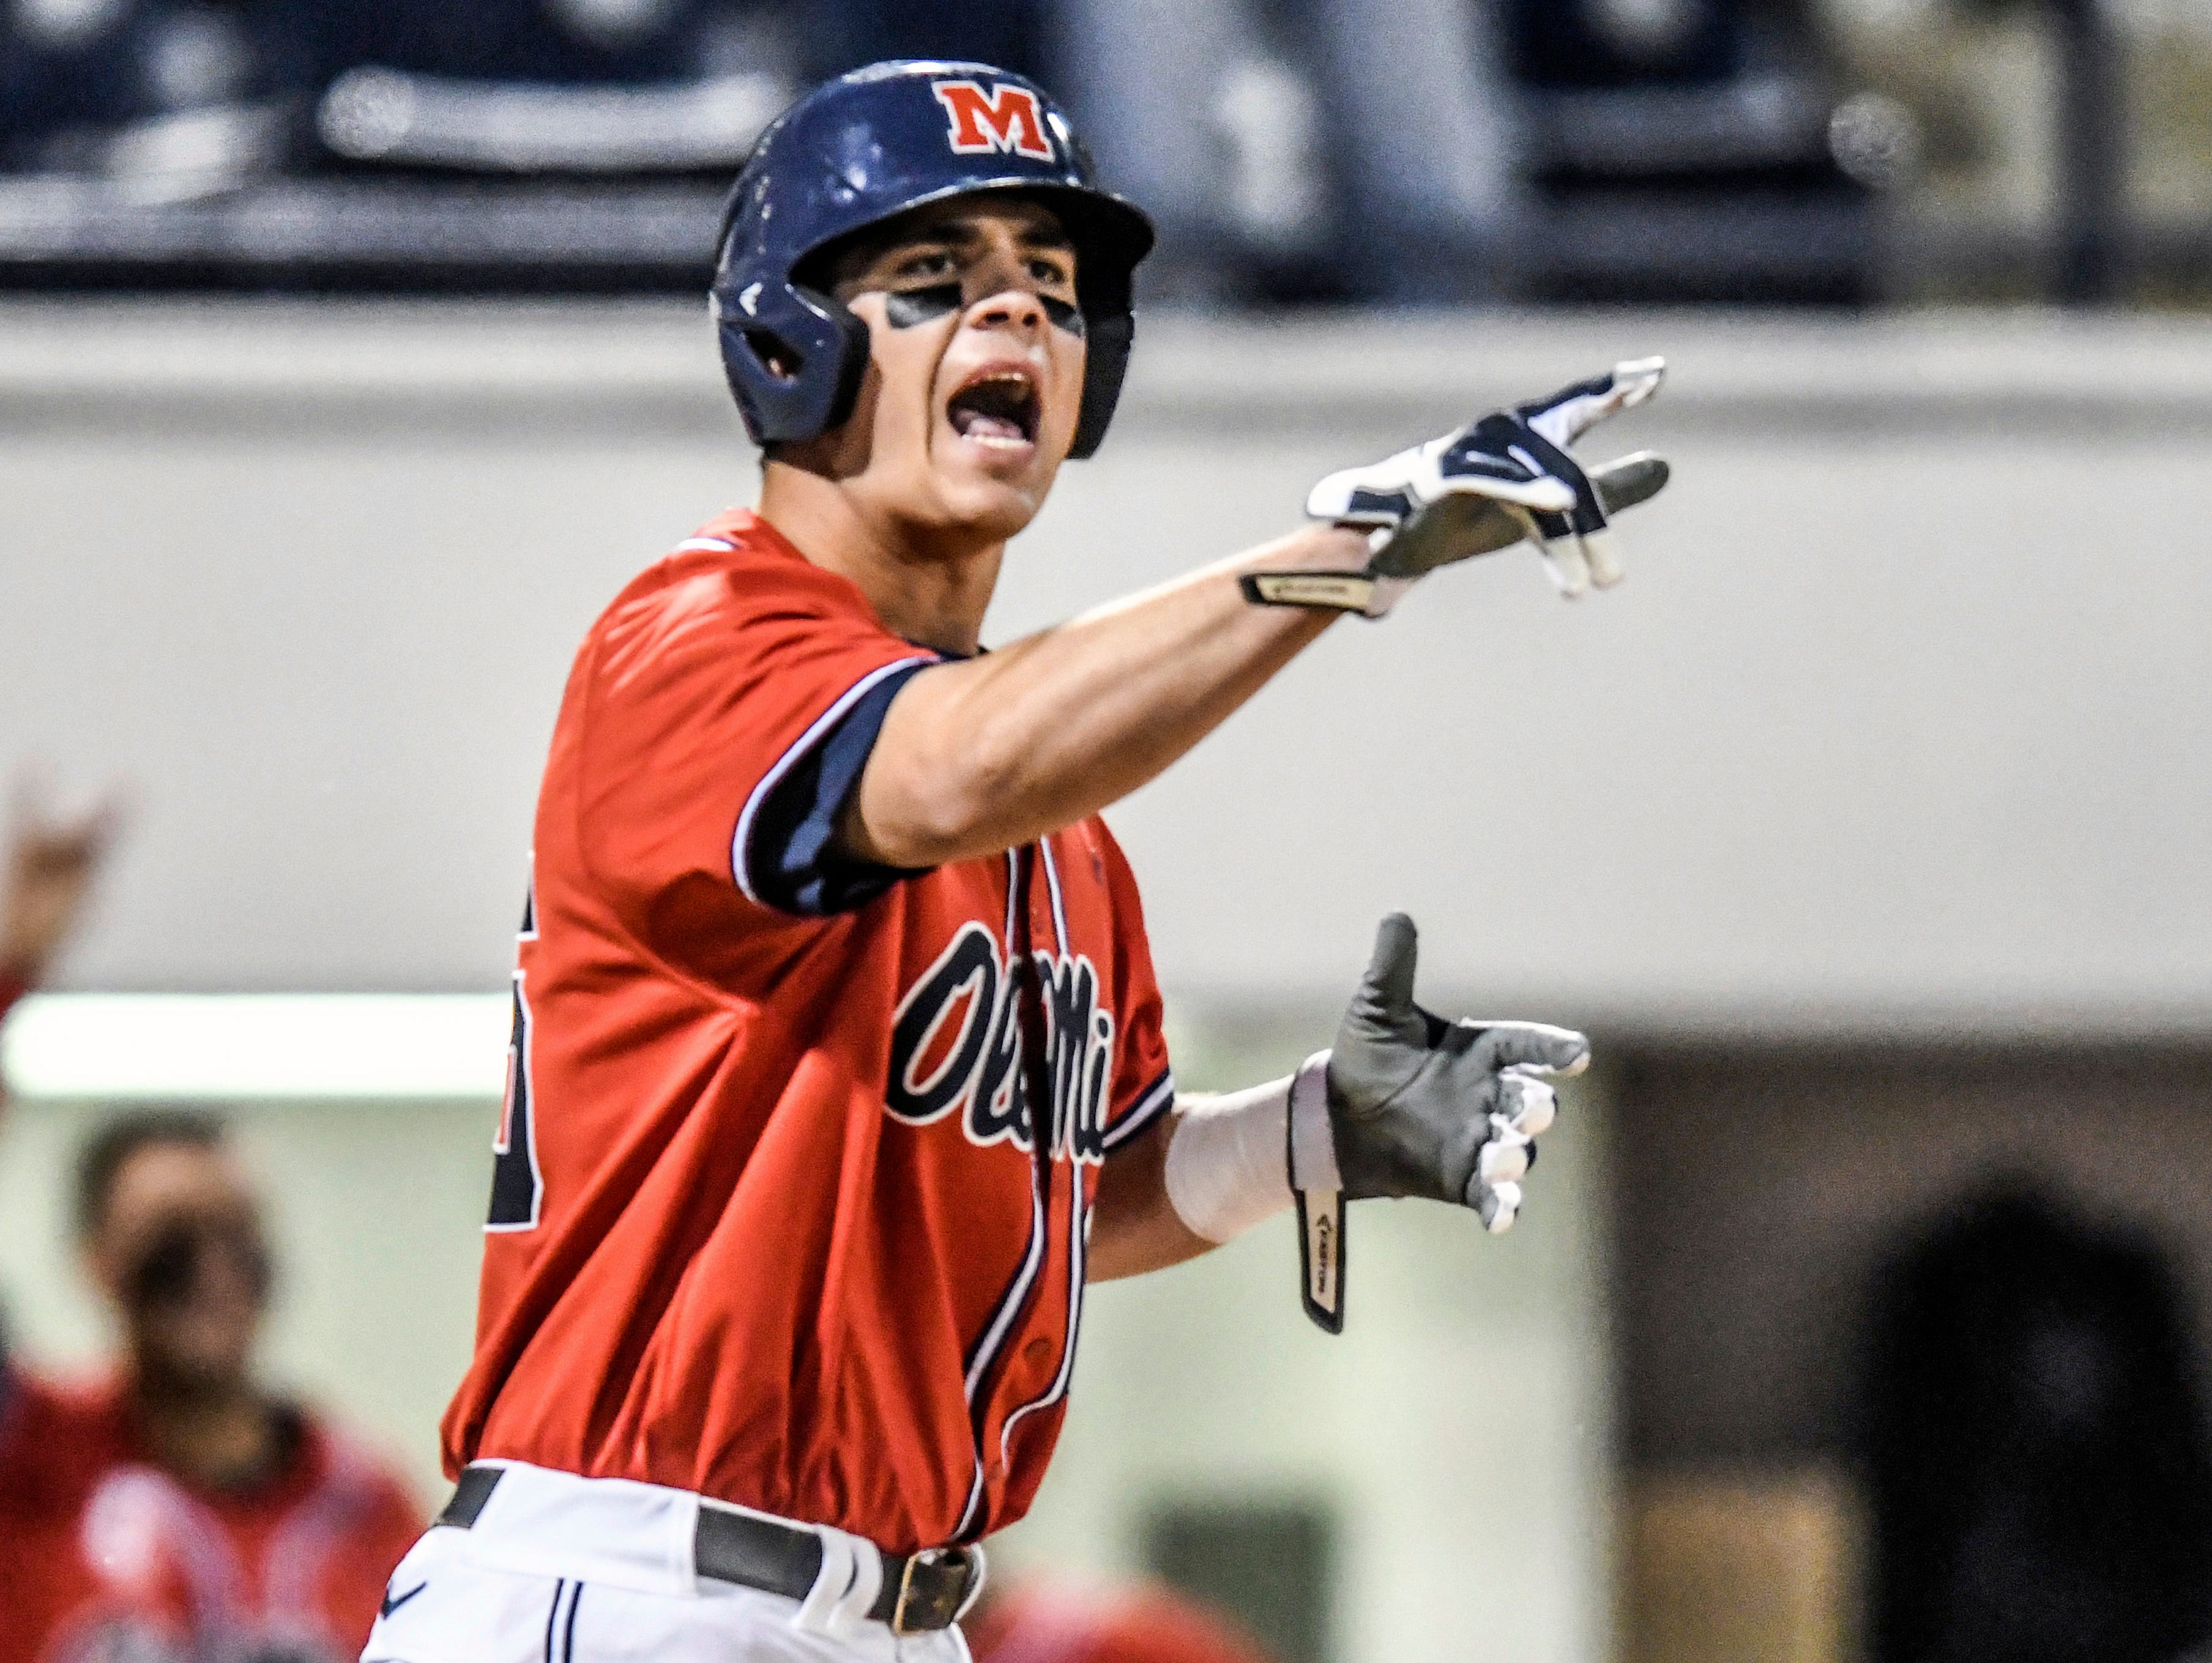 Ole Miss' Colby Bortles (25) posted two hits and scored a run in the Rebels' SEC opener.